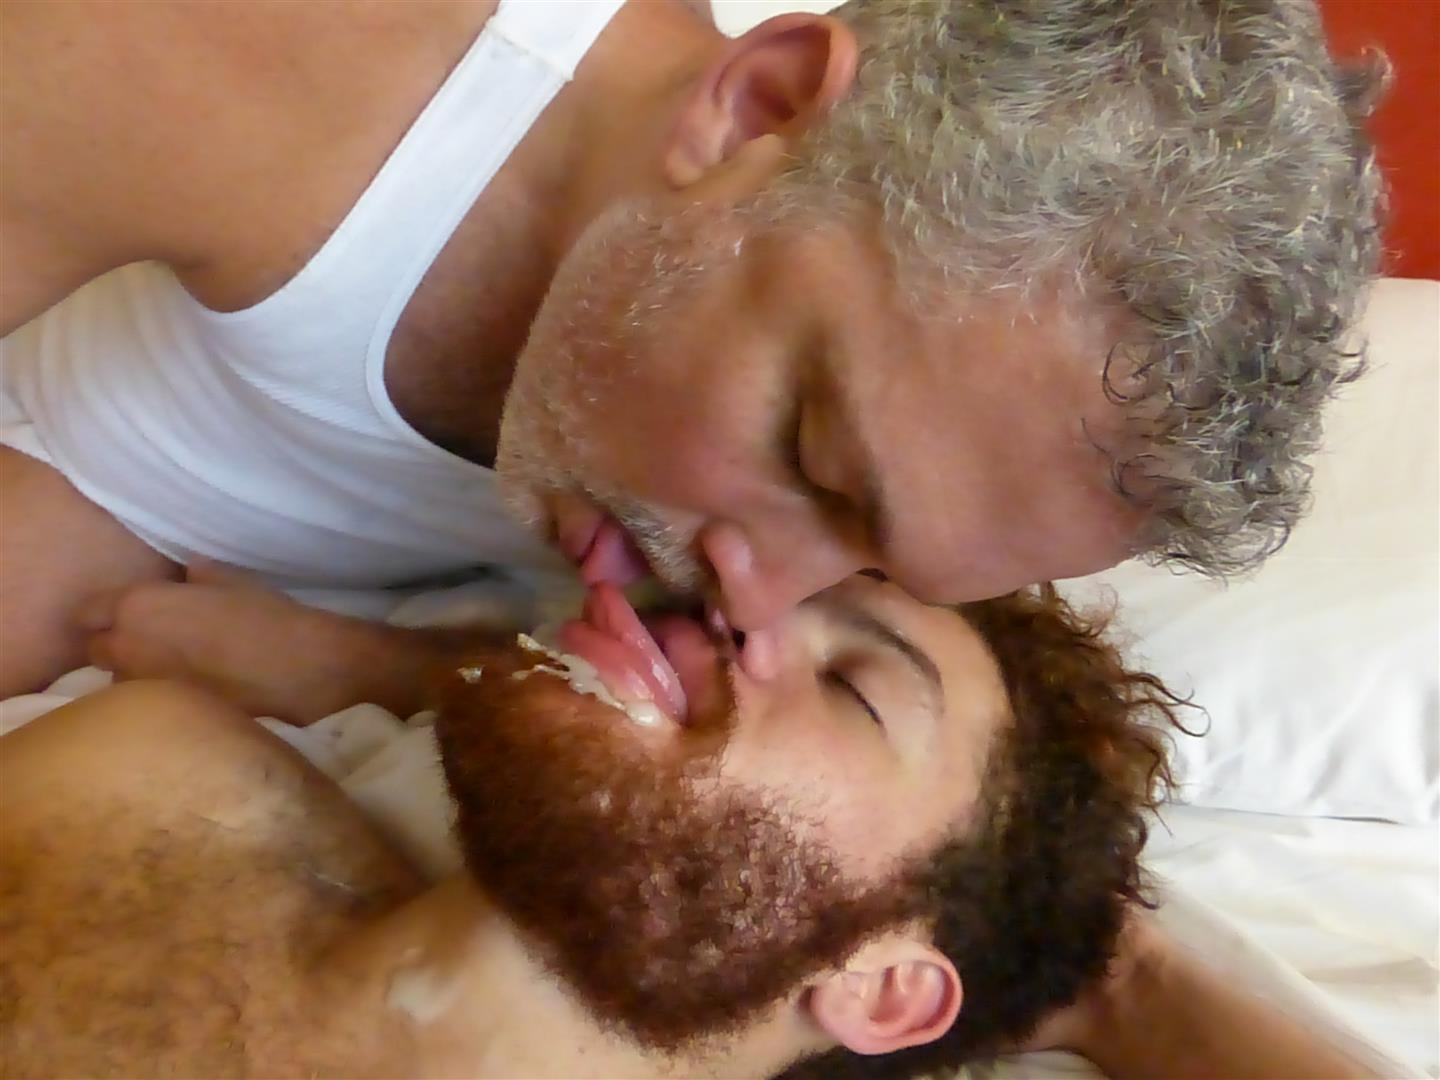 Maverick-Men-Adam-Hairy-Muscle-Cub-Barebacked-By-Two-Muscle-Daddies-Amateur-Gay-Porn-36 Young Hairy Muscle Cub With A Big Uncut Cock Takes Two Daddy Cocks